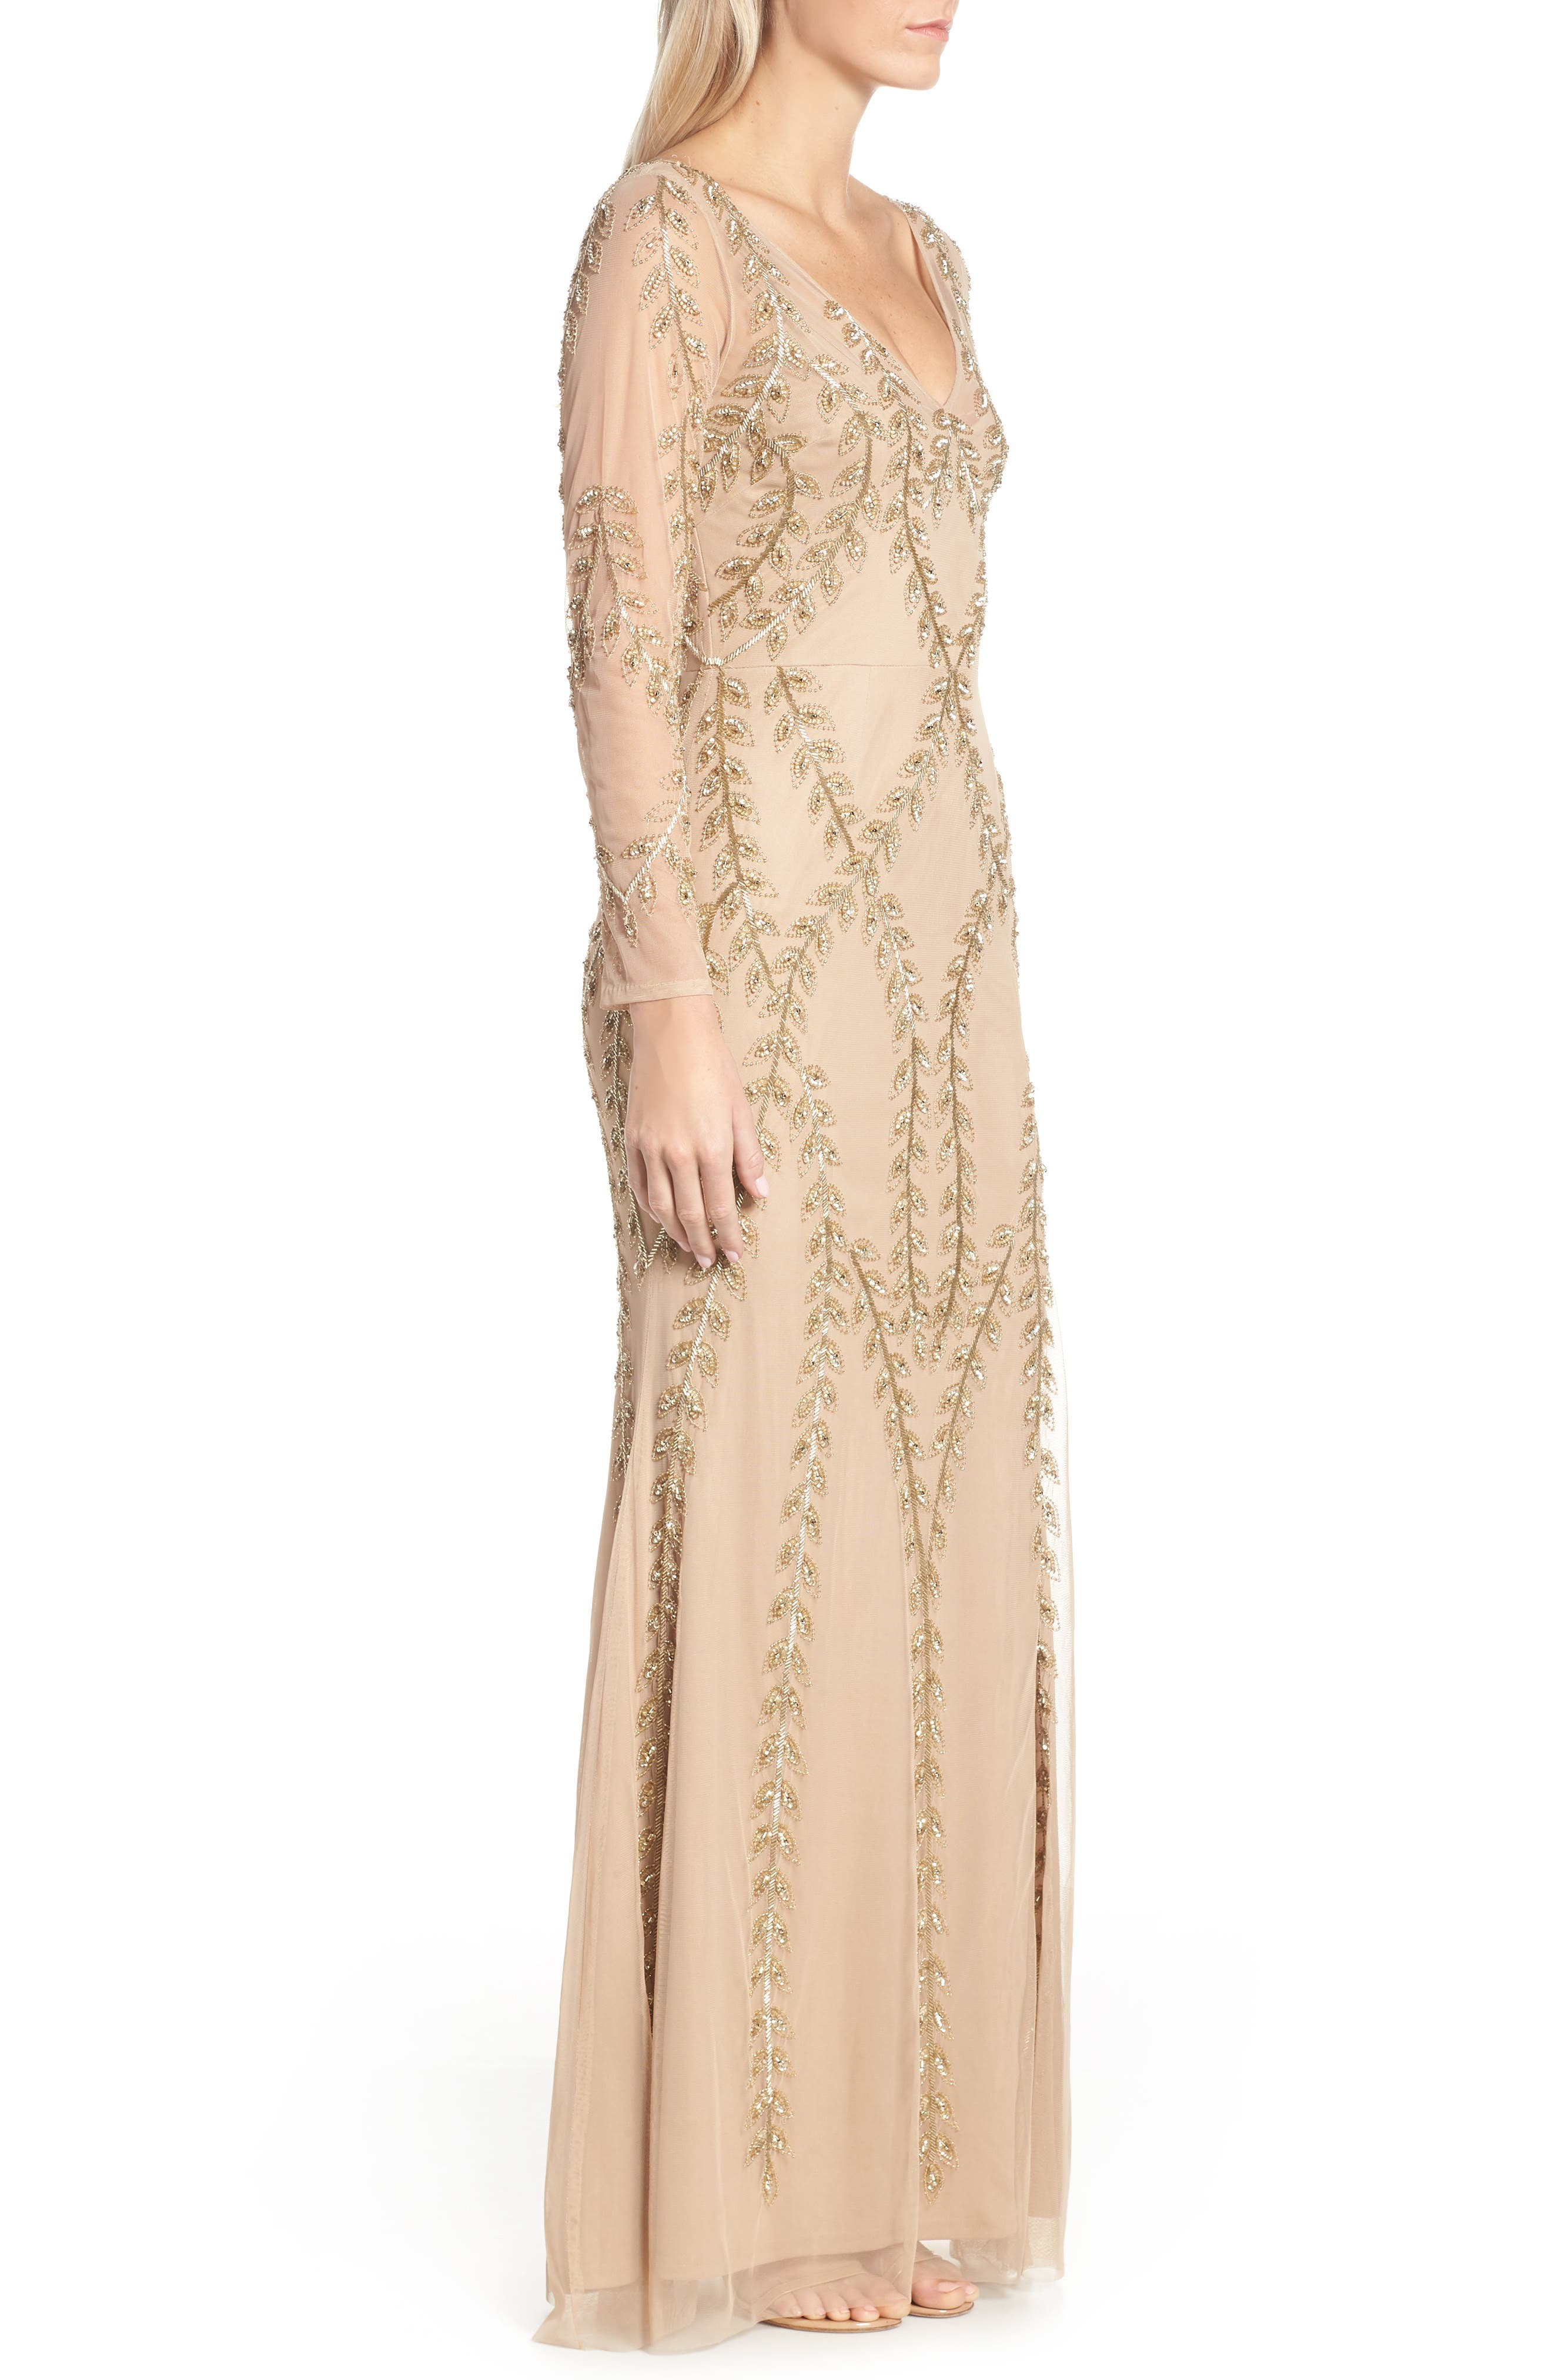 ADRIANNA PAPELL,                             Fern Beaded Gown,                             Alternate thumbnail 4, color,                             CHAMPAGNE/ GOLD